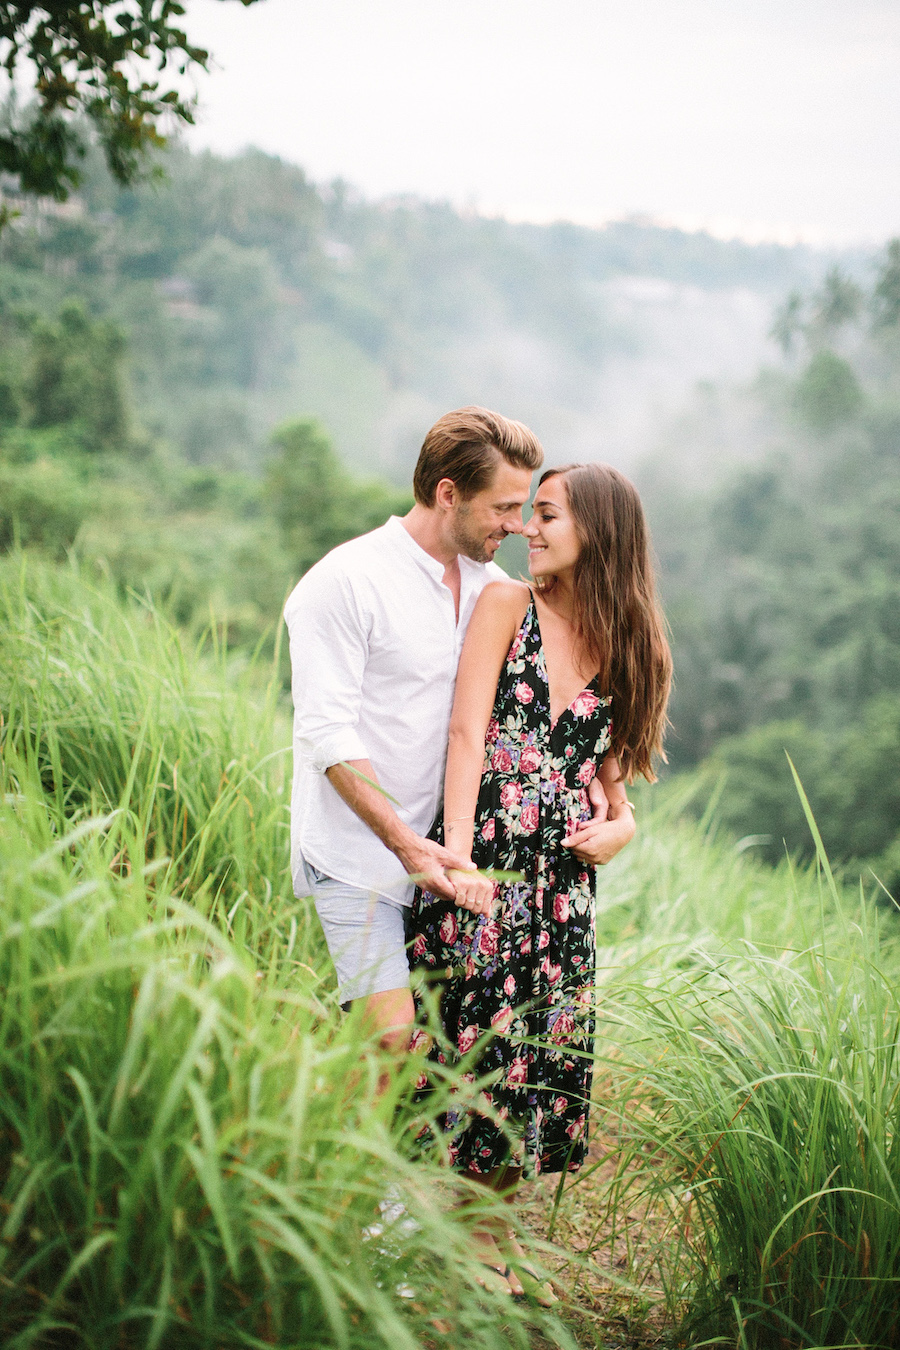 saya-photography-pre-wedding-bali-rice-field-49.jpg